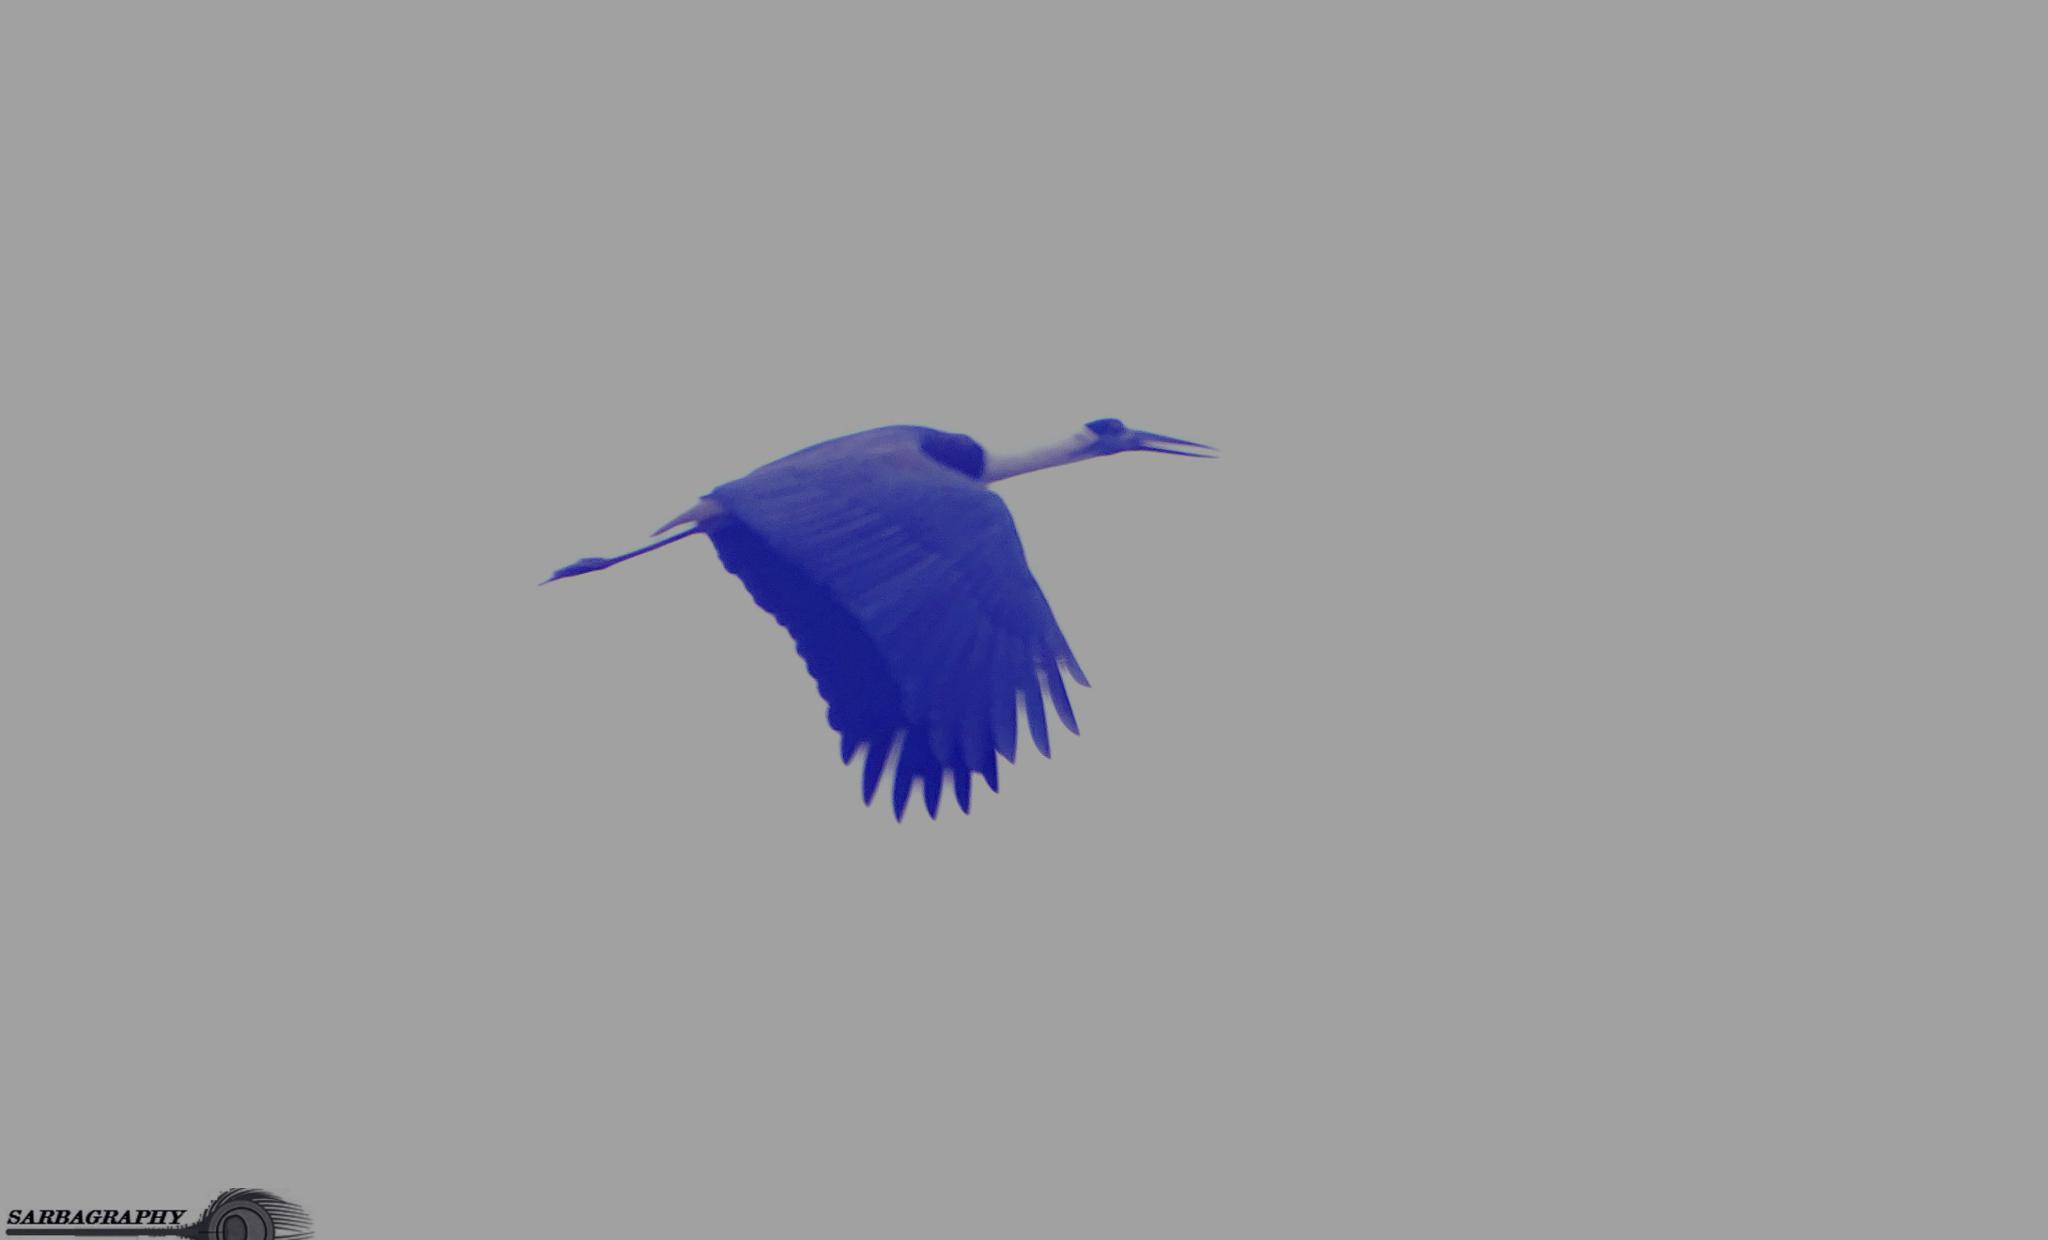 Fly High by Sarbajit Chatterjee